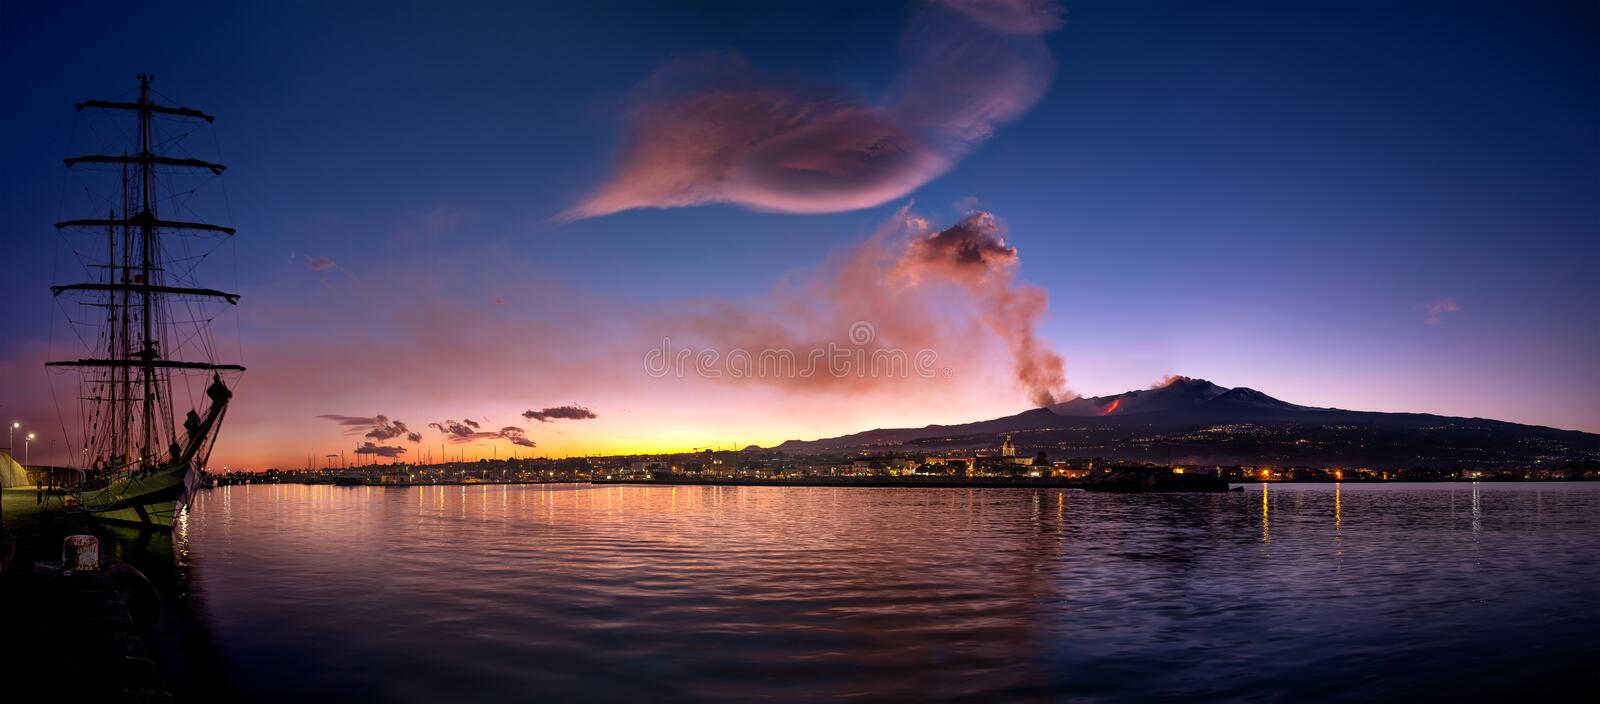 Etna eruption viewed from the sea stock image